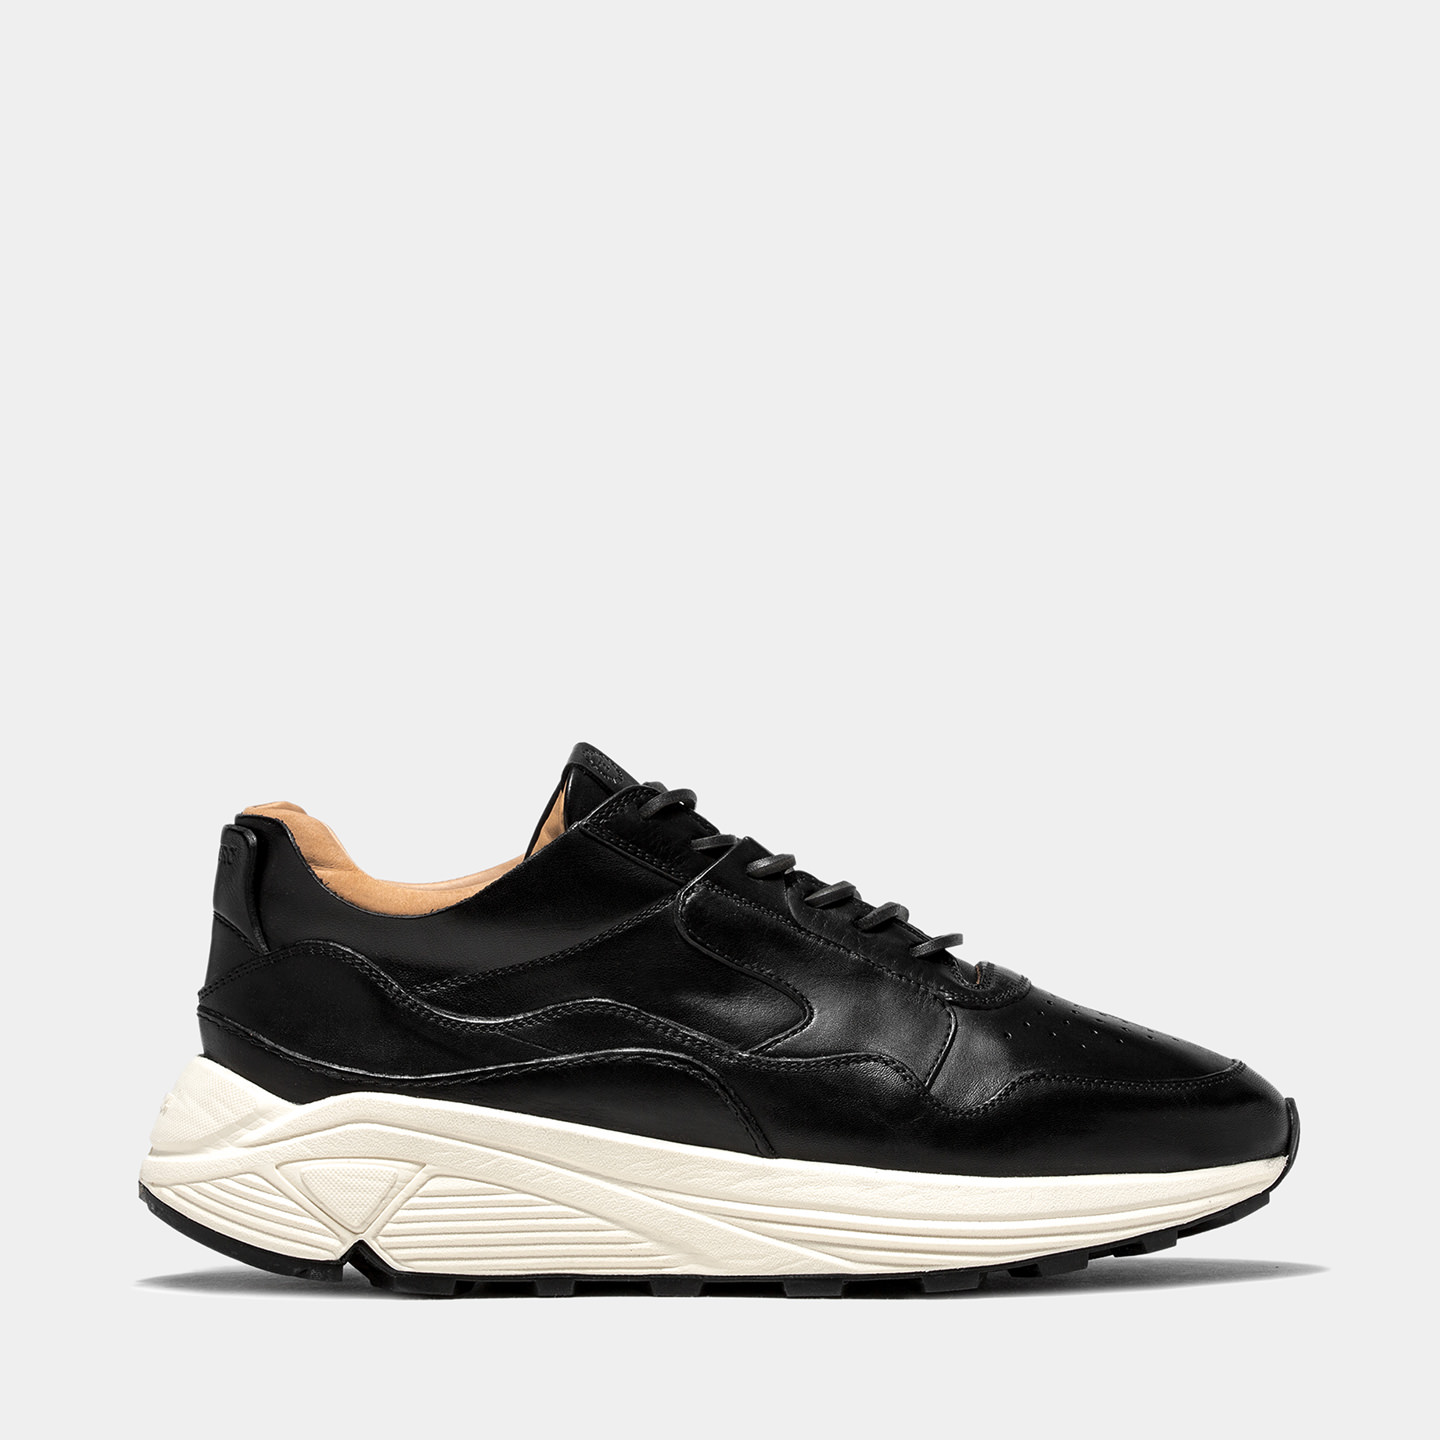 BUTTERO: VINCI RUNNING IN BLACK CALF LEATHER